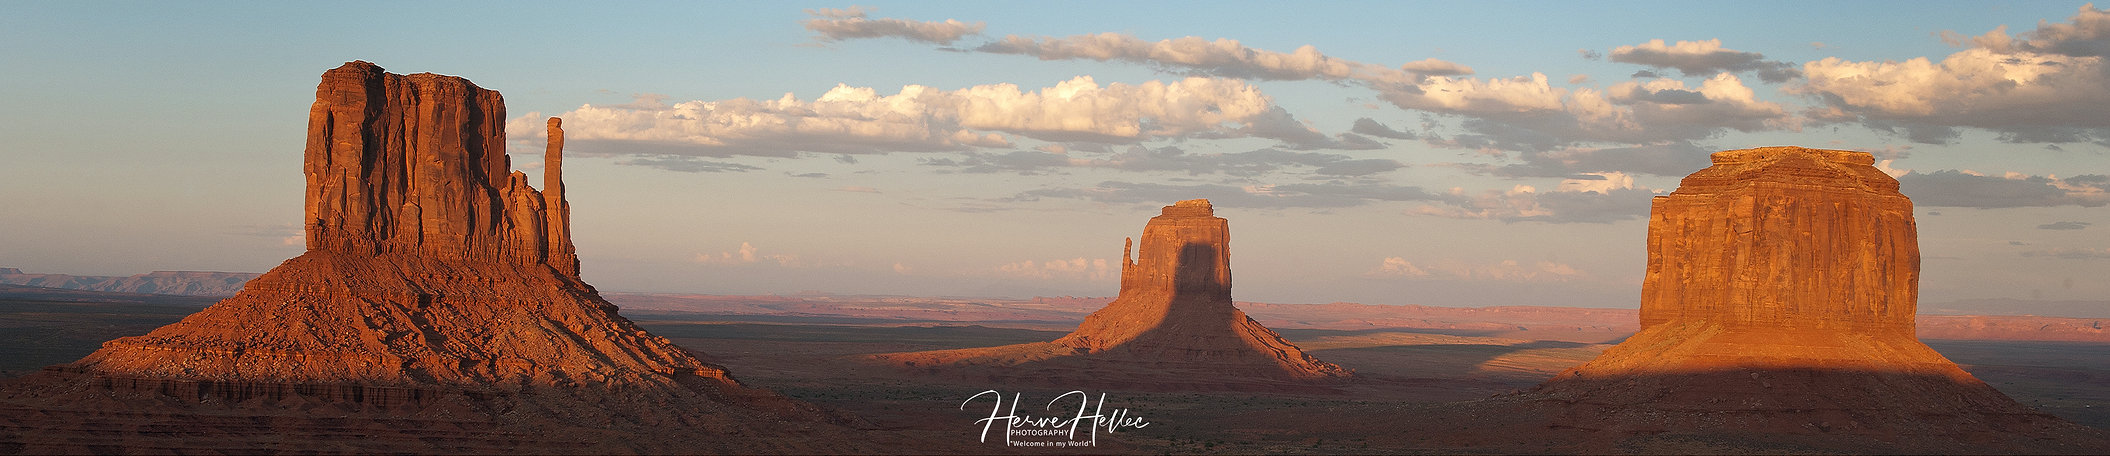 Monument Valley SIGNEE MOVA_0002.jpg